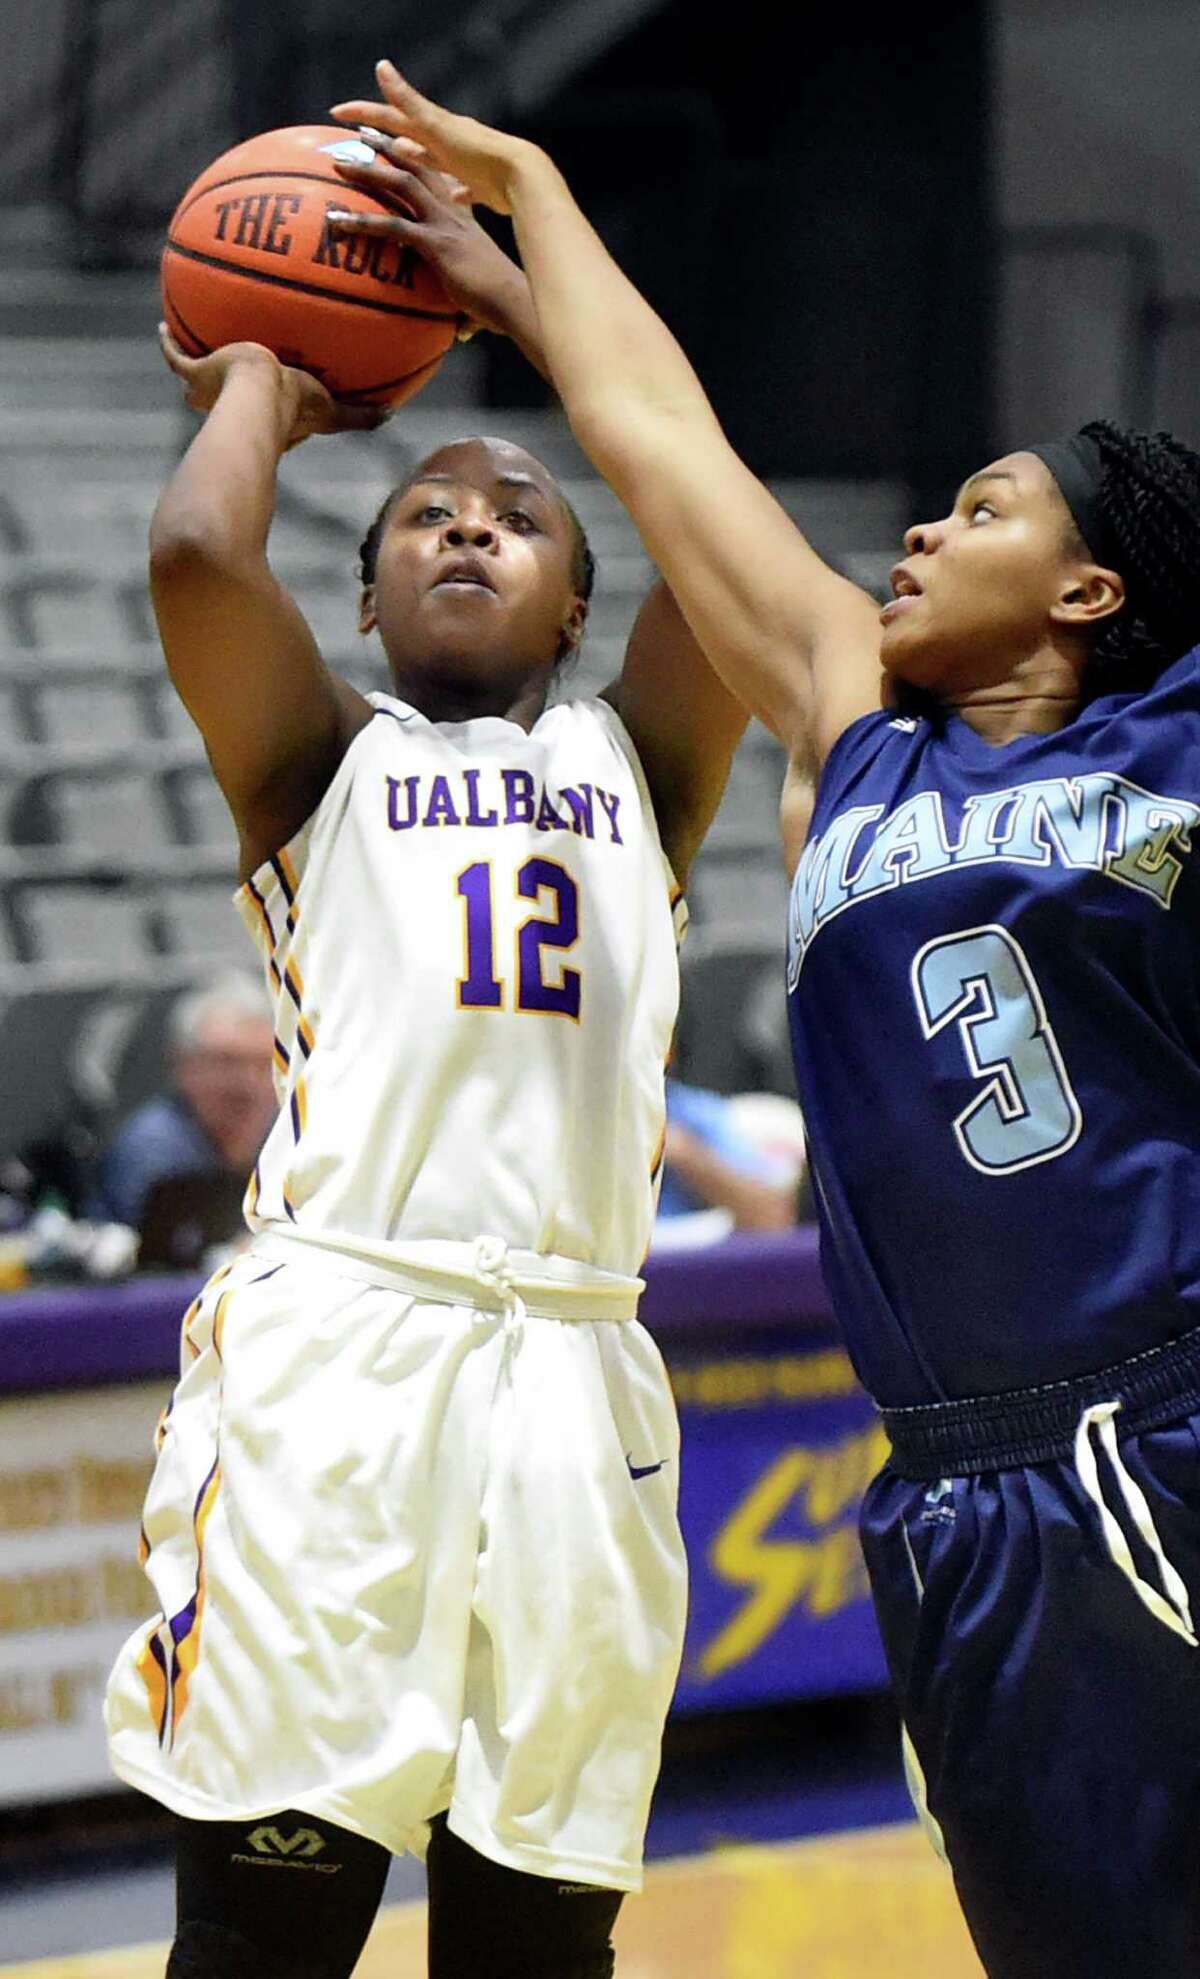 UAlbany's Imani Tate, left, shoots for the hoop as Maine's Chantel Charles defends during their basketball game on Saturday, Jan. 16, 2016, at SEFCU Arena in Albany, N.Y. (Cindy Schultz / Times Union)